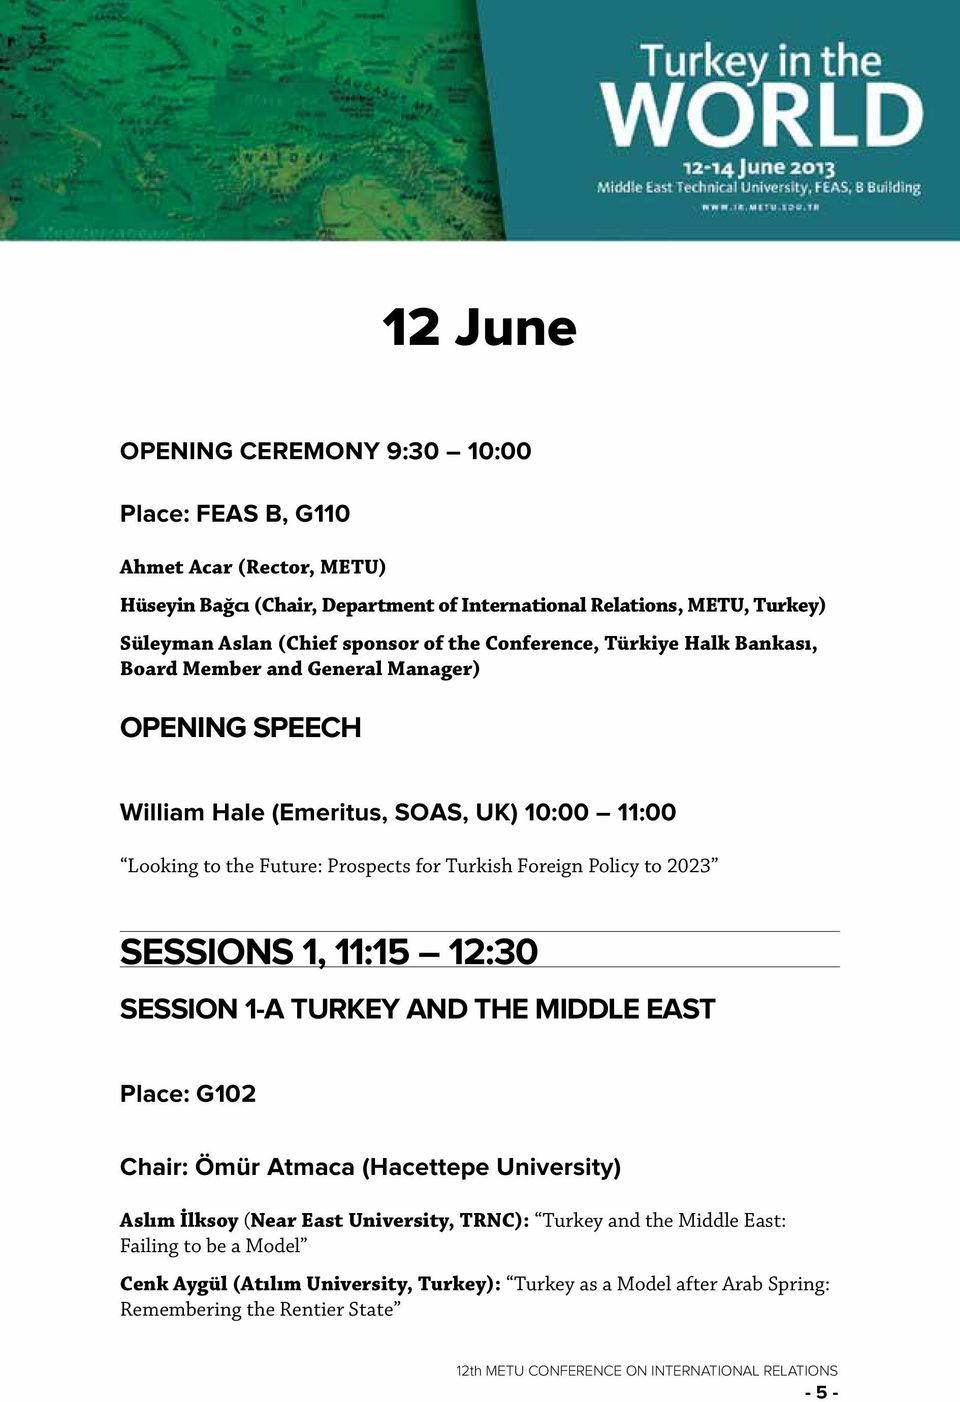 Turkish Foreign Policy to 2023 SESSIONS 1, 11:15 12:30 Session 1-A Turkey and the Middle East Place: G102 Chair: Ömür Atmaca (Hacettepe University) Aslım İlksoy (Near East